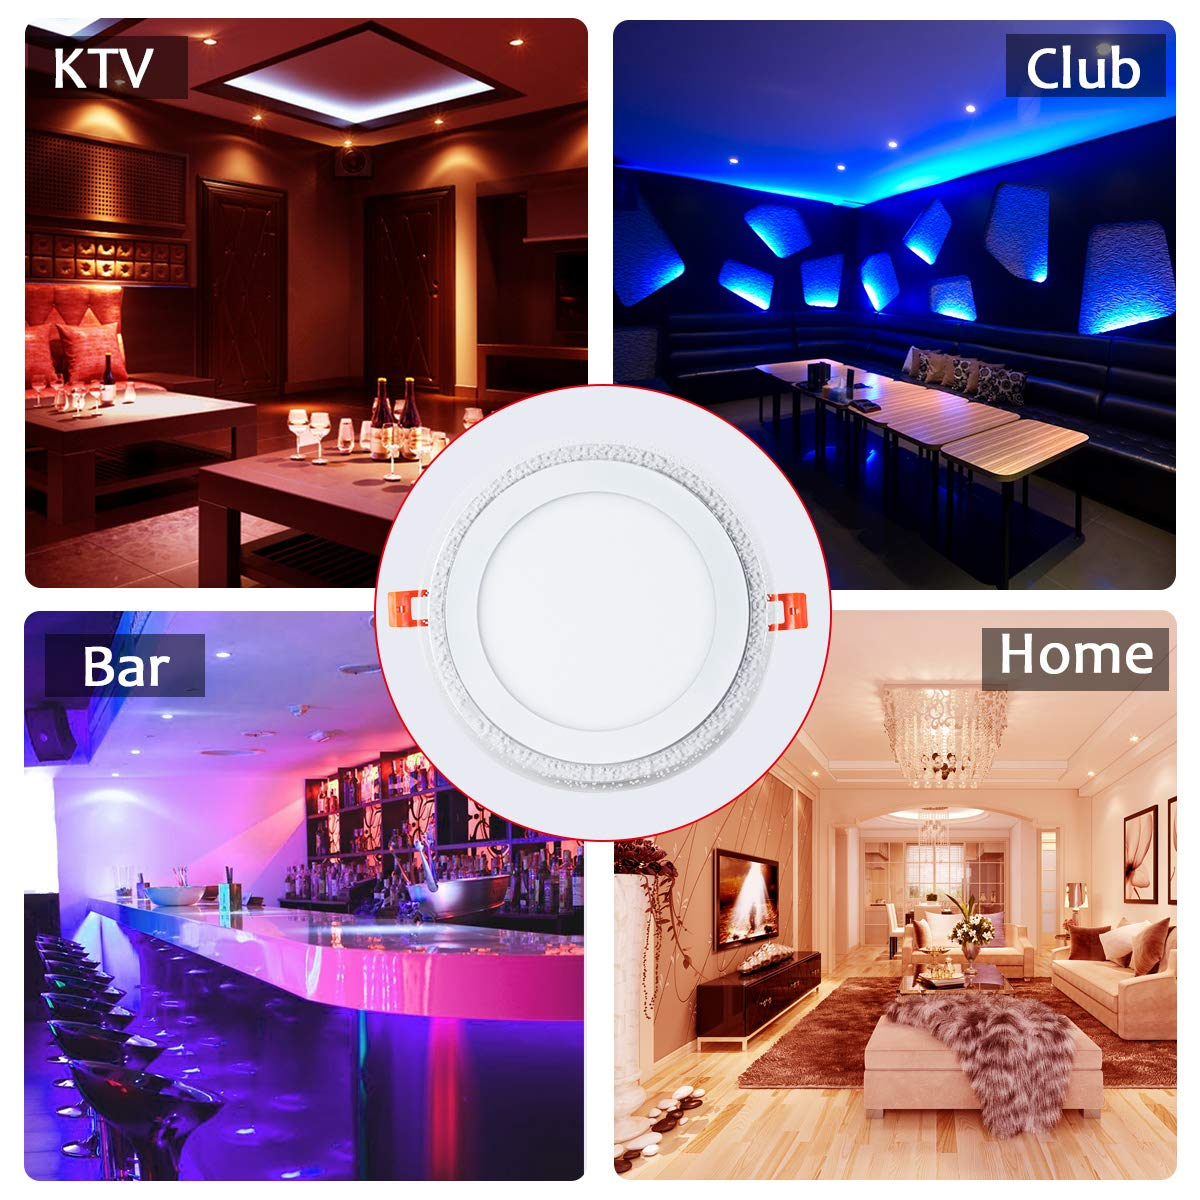 8 Inch Remote Control RGB LED Color Changing Recessed Ceiling Round Panel Lights, Cool White 6500k+ RGB Ultra Thin with Driver, AC100-240V 18+6W, Office, Home, Commercial Lighting Pack of 5 by zhaosheng (Image #2)